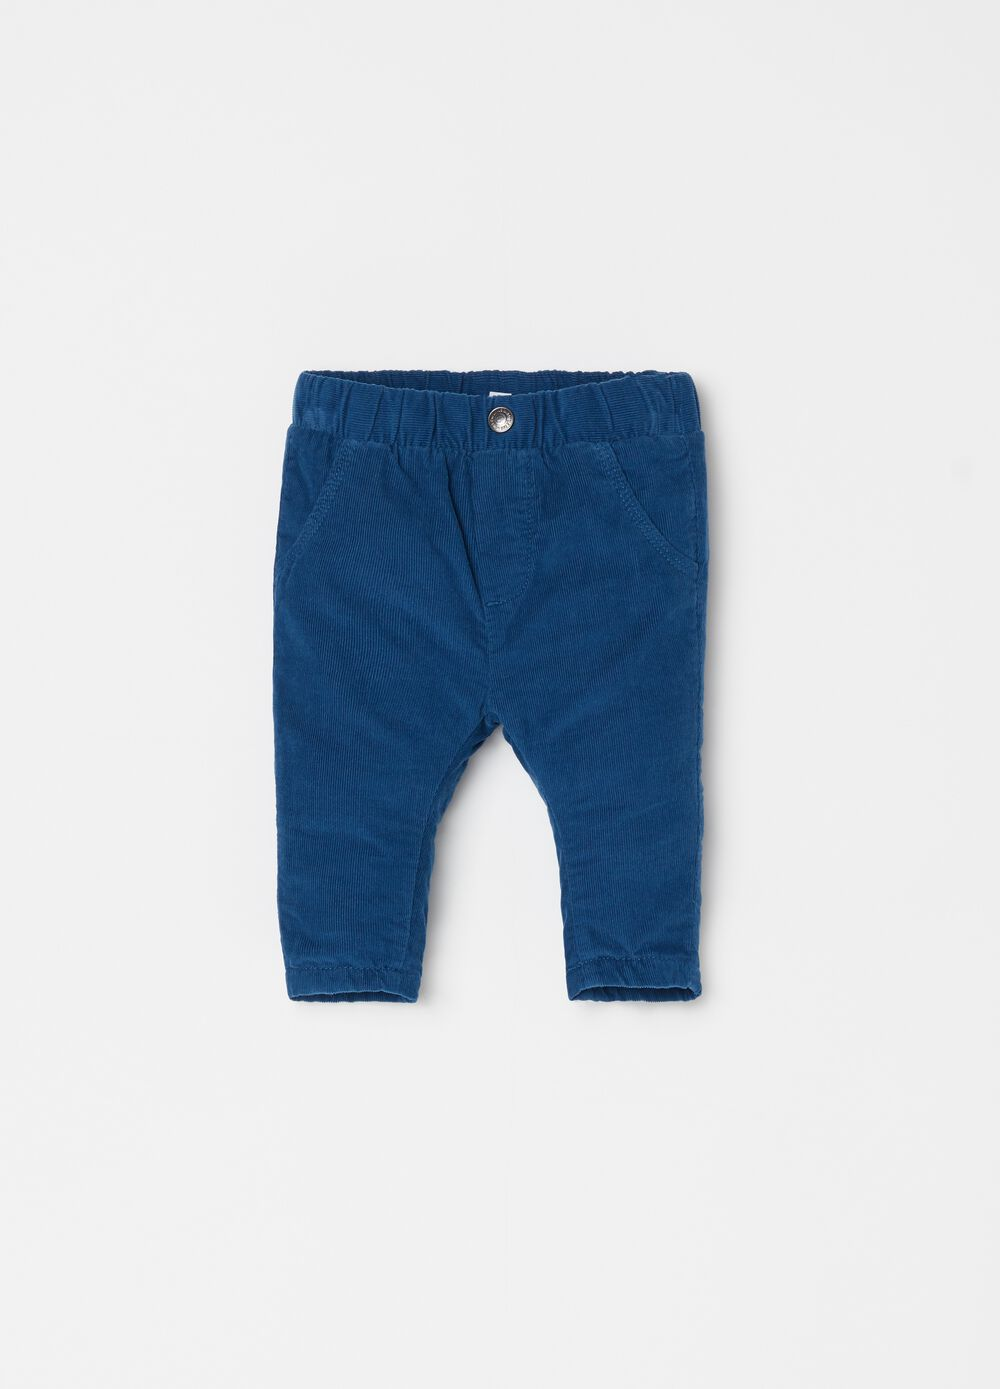 Trousers in 100% cotton velvet